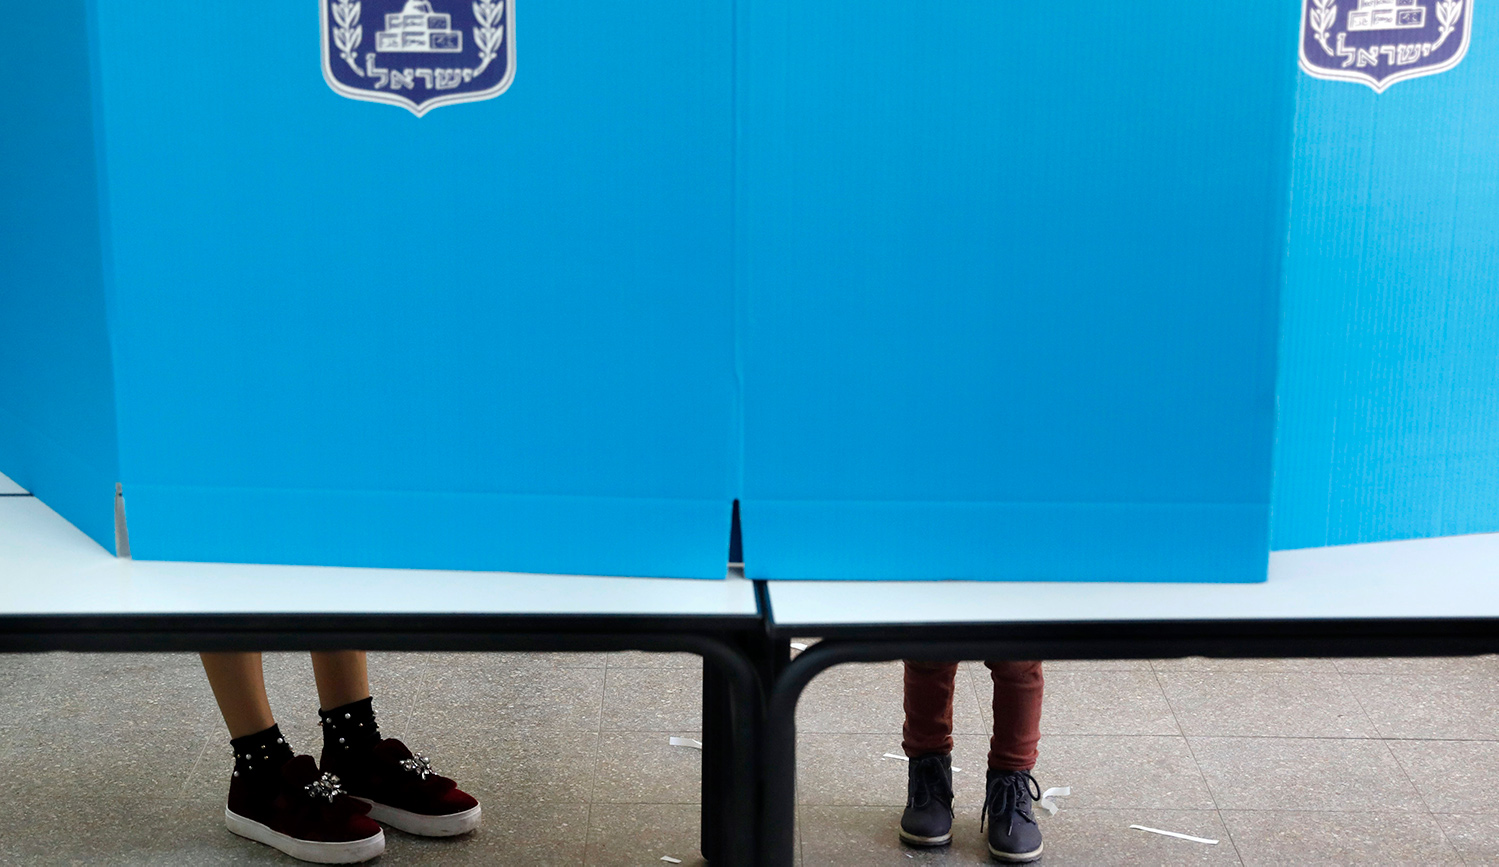 Israelis voting on April 9, 2019. AHMAD GHARABLI/AFP/Getty Images.